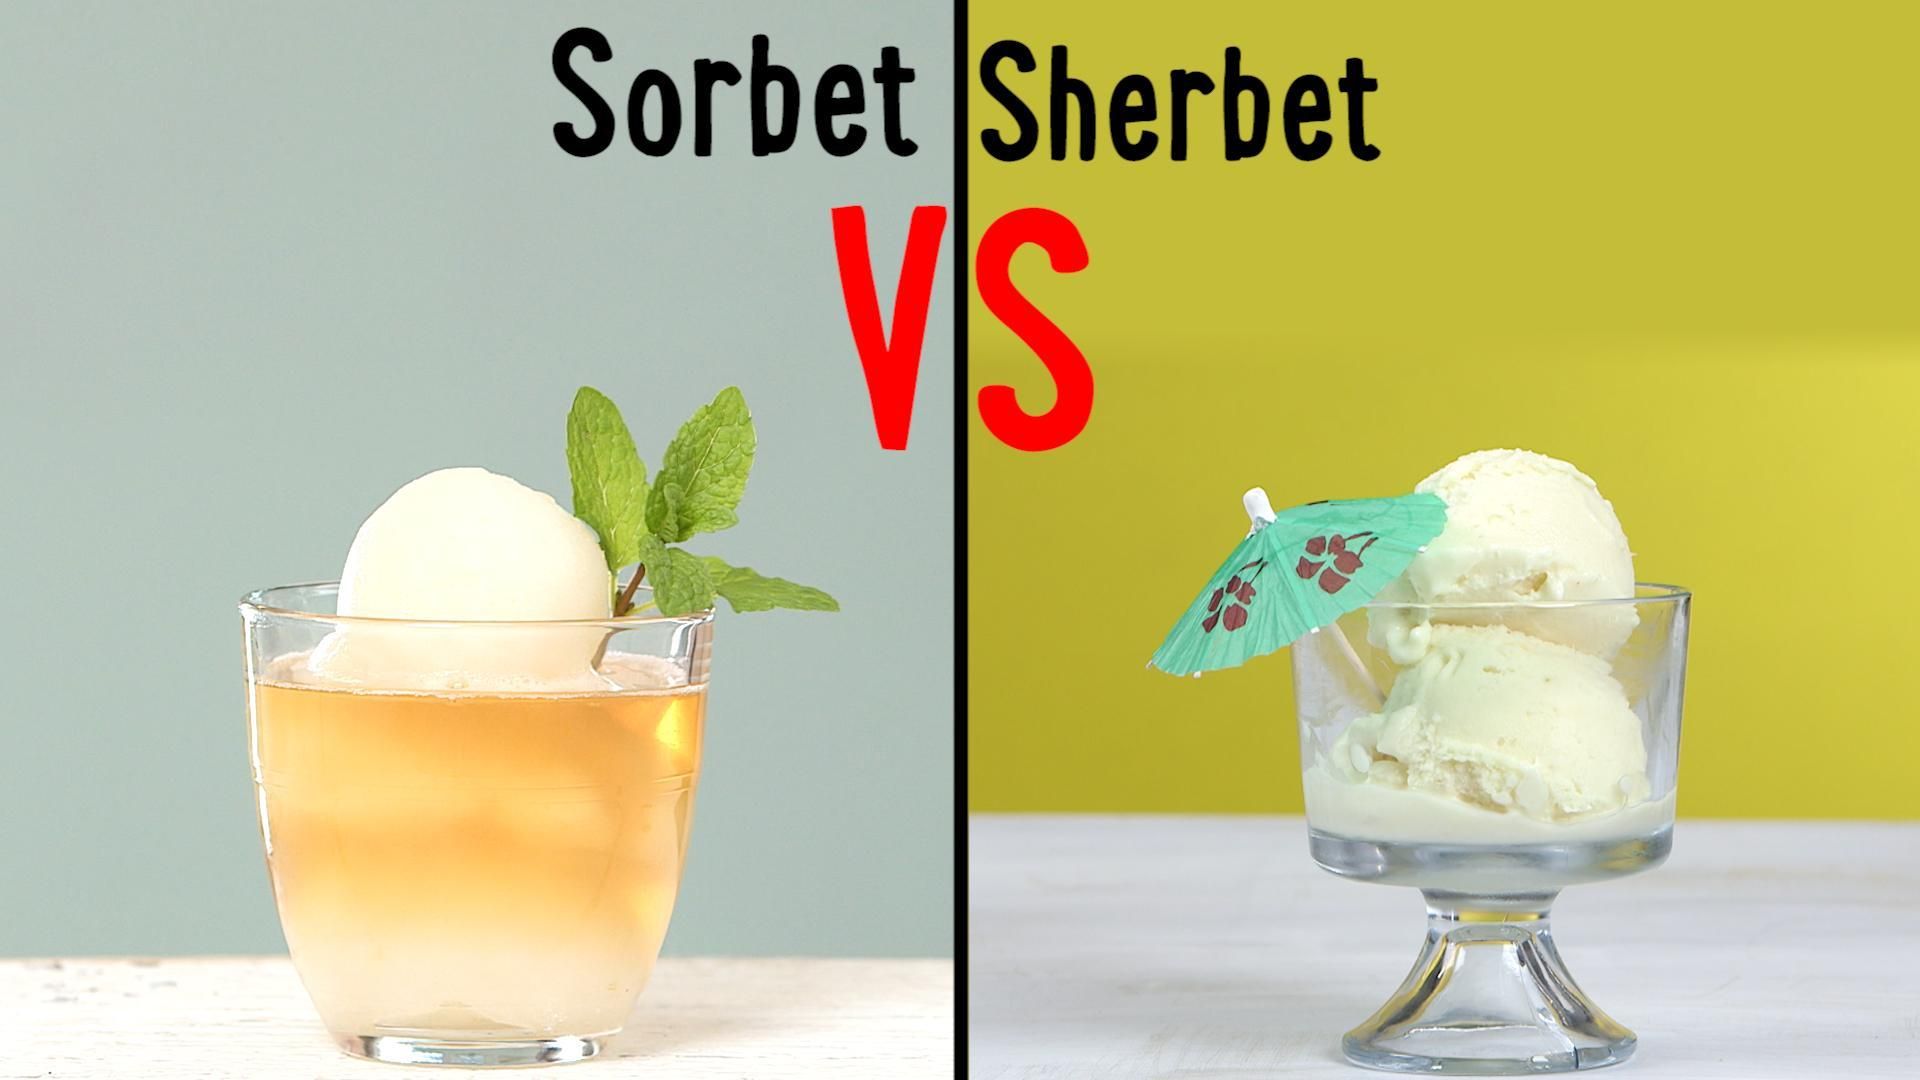 What's the Difference Between Sorbet and Sherbet?